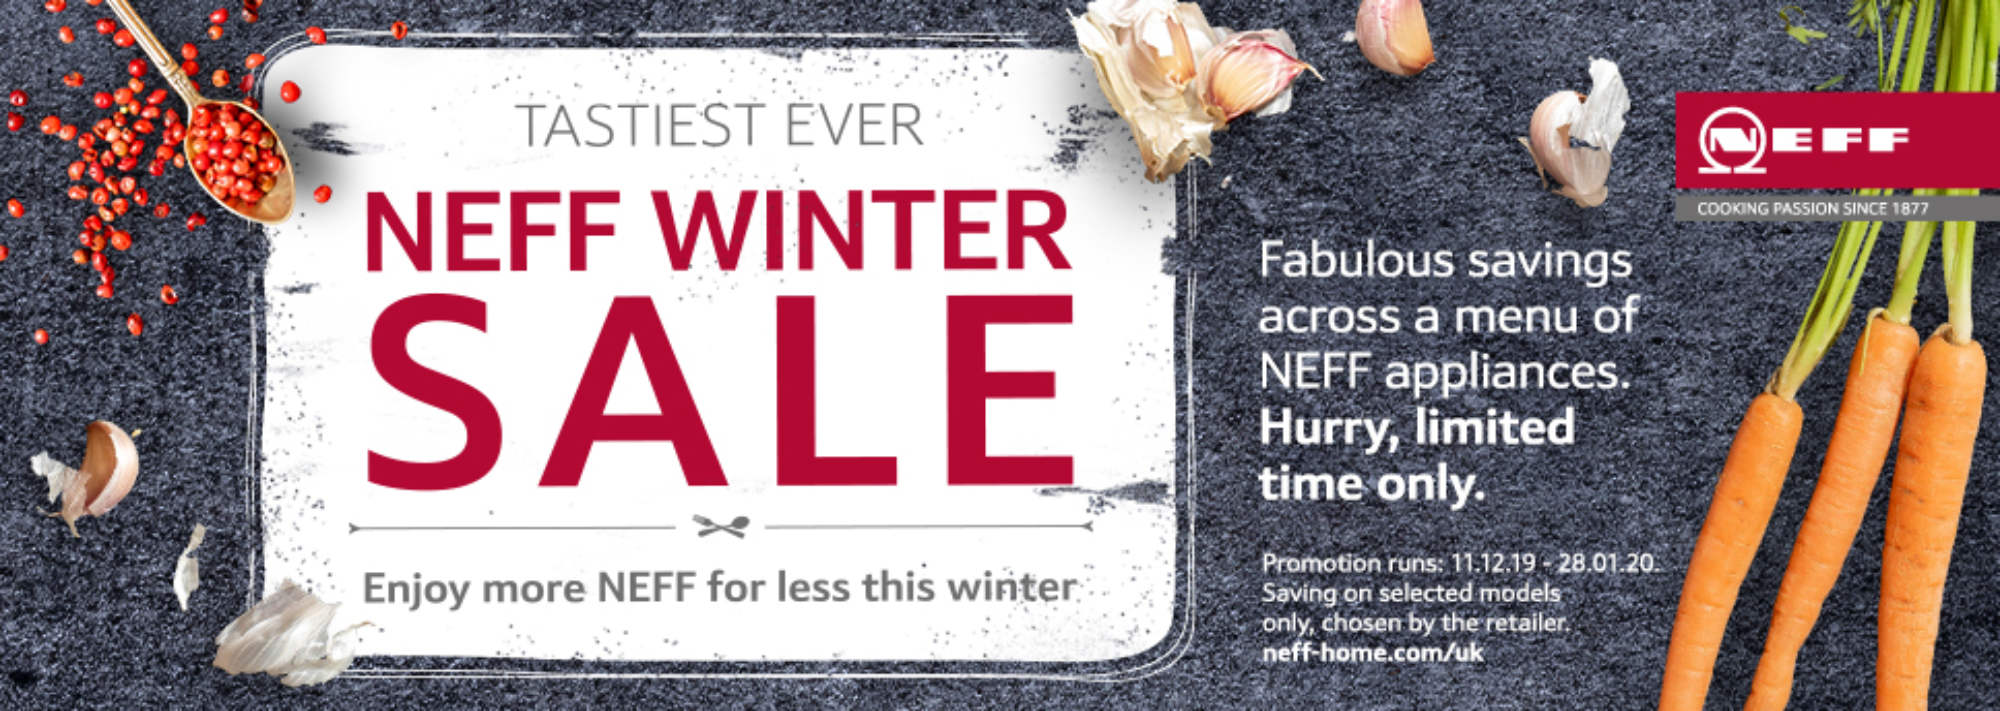 NEFF Winter Sale